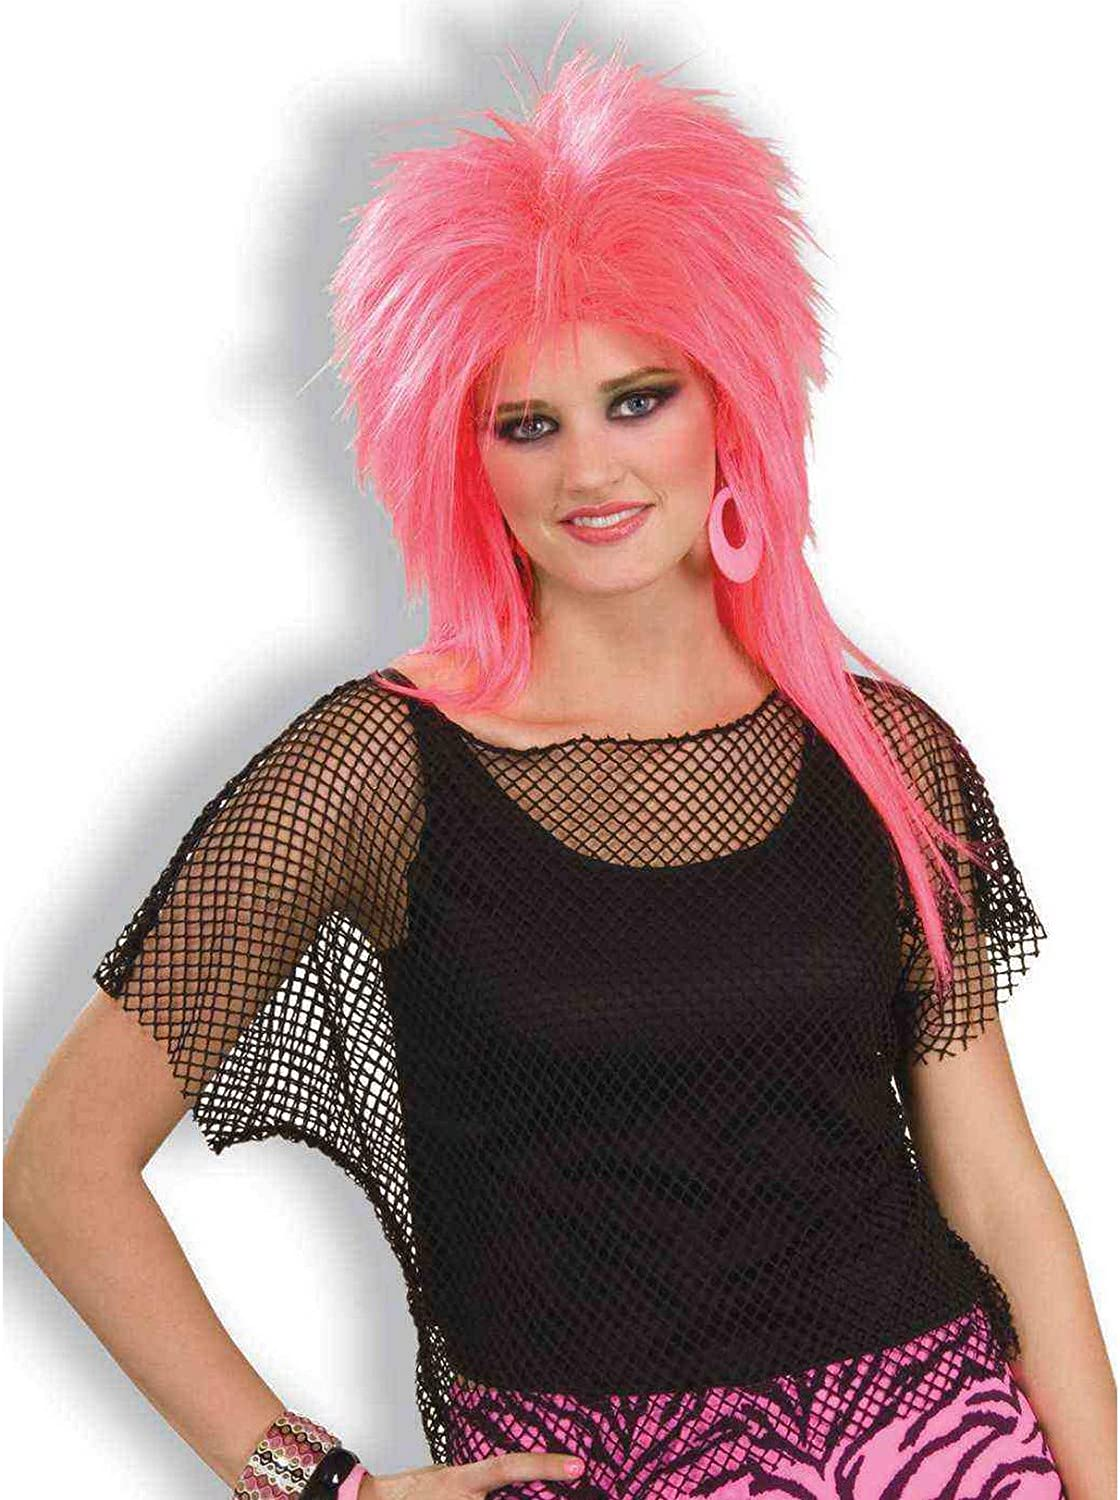 Woman/'s Rocker Pink Mesh Costume Top 80/'s Punk Style